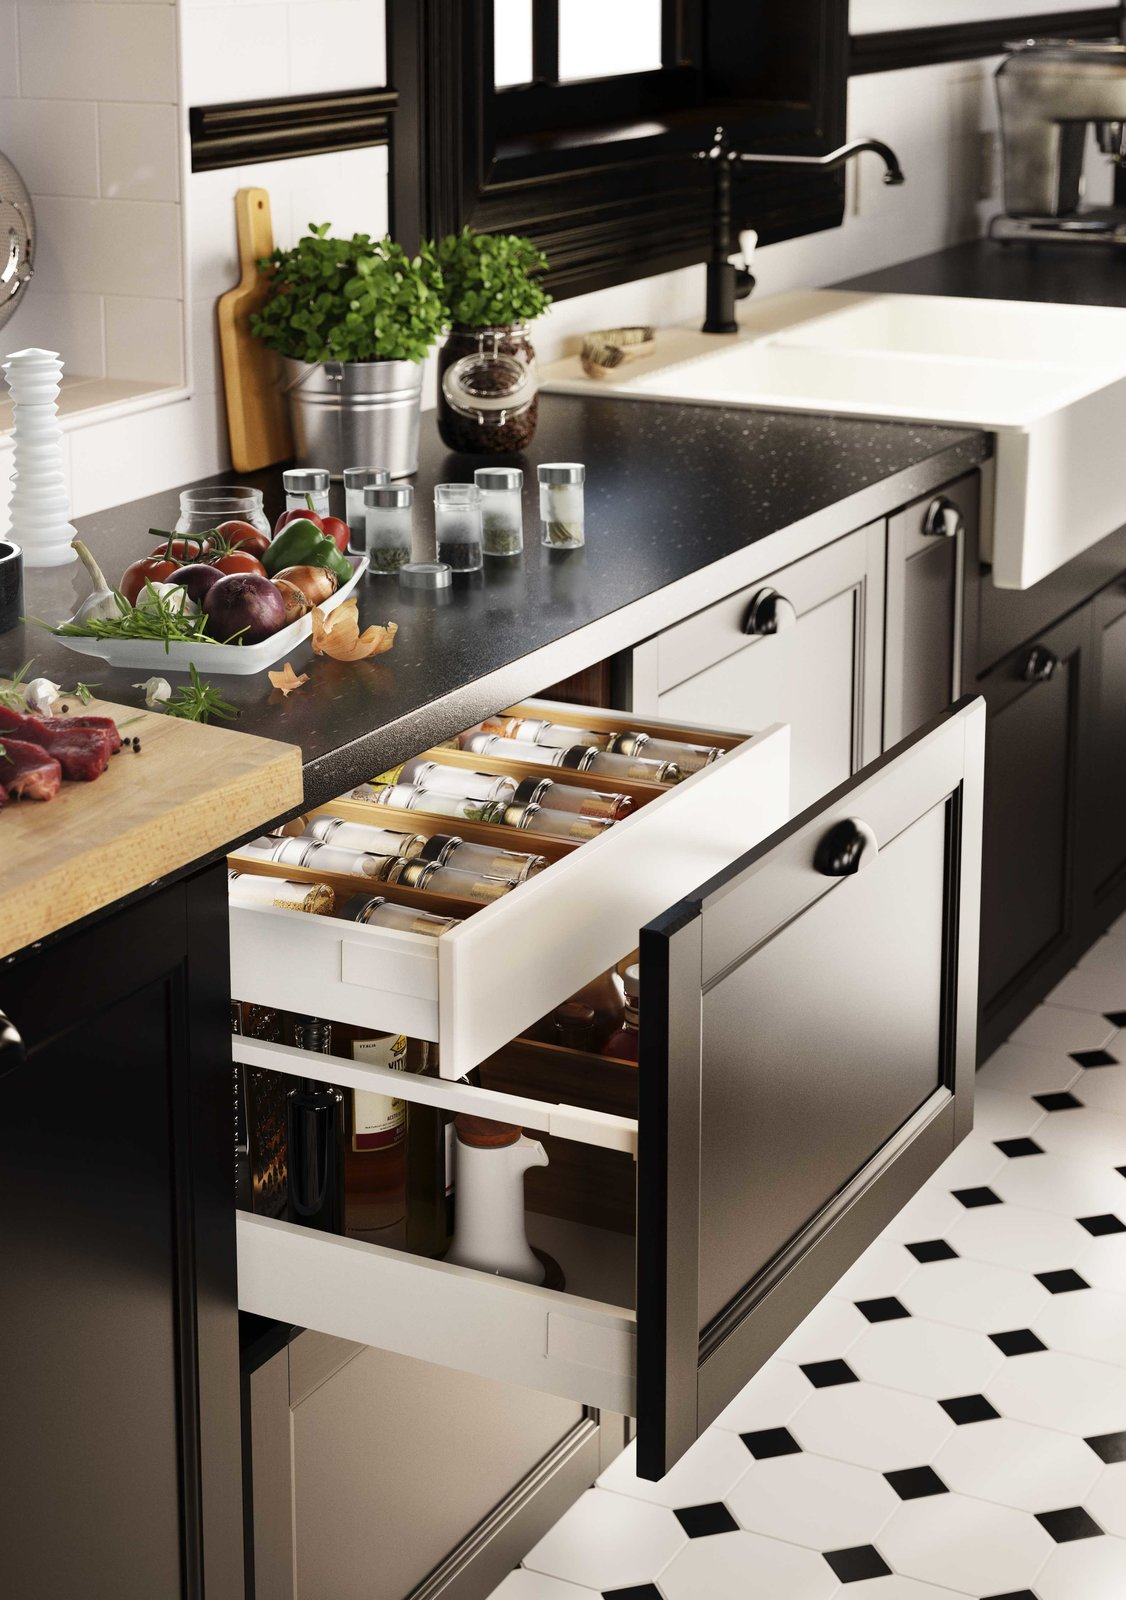 Kitchen, Drop In Sink, Vessel Sink, Subway Tile Backsplashe, and Ceramic Tile Floor More traditional cabinet cup pulls from Ikea can still have a modern sensibility when paired with other sleek finishes.  Photo 6 of 7 in You Can Now Build Your Entire Kitchen with IKEA (Appliances Too!)